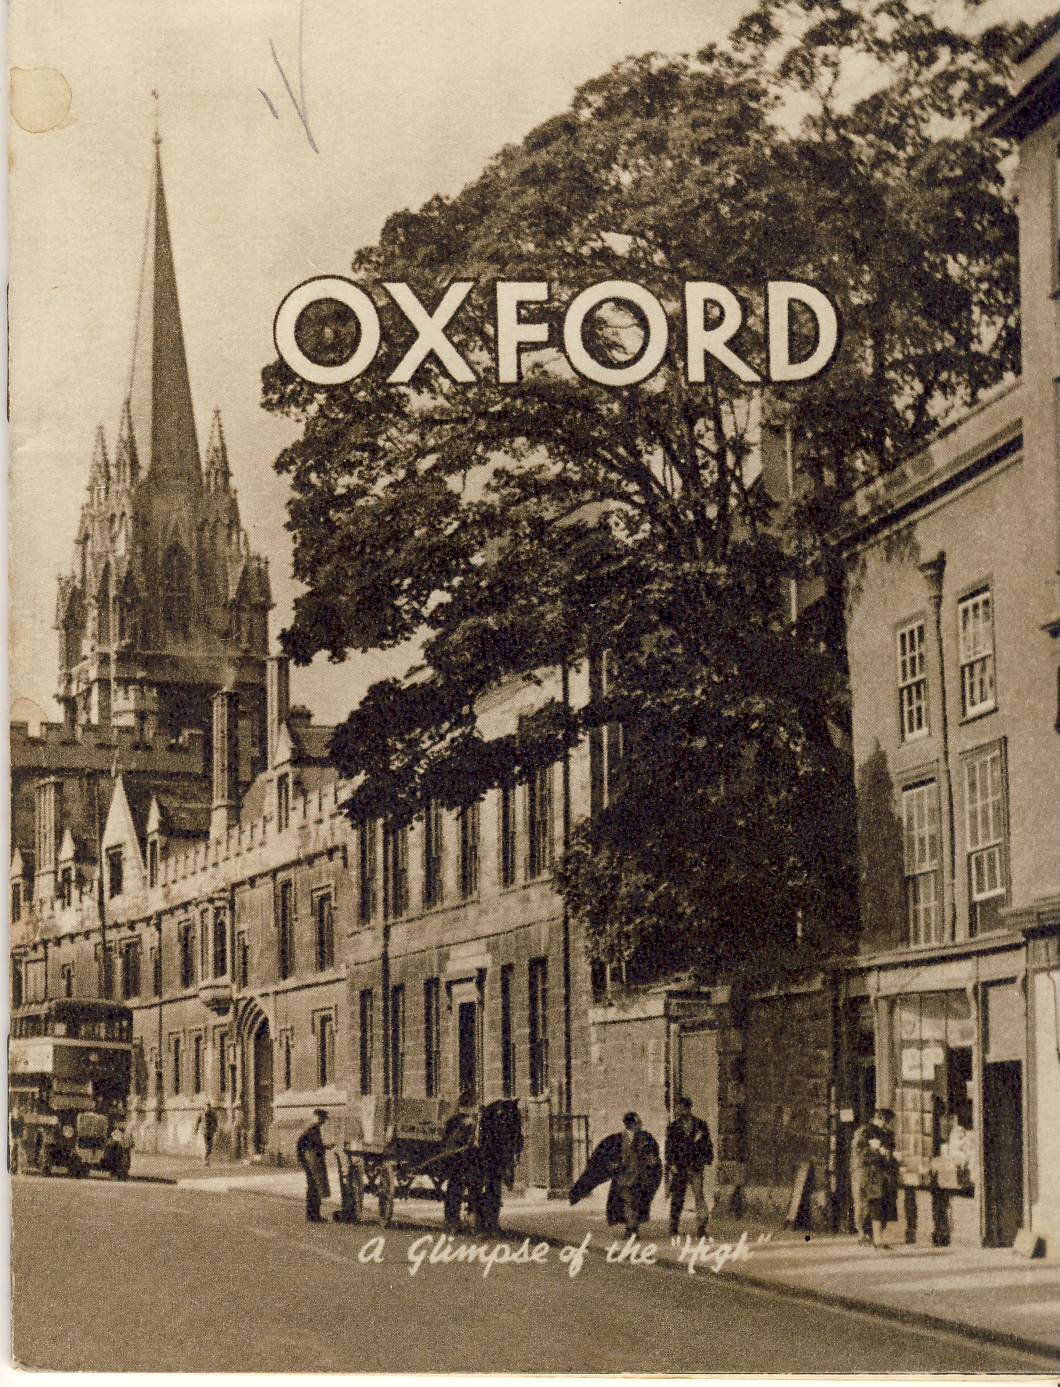 OXFORD Photchrom Midge View Book vintage 32 page mini-guide refS5 Described by Michael de Bock Porter. Copyright production by Photochrom Co Ltd